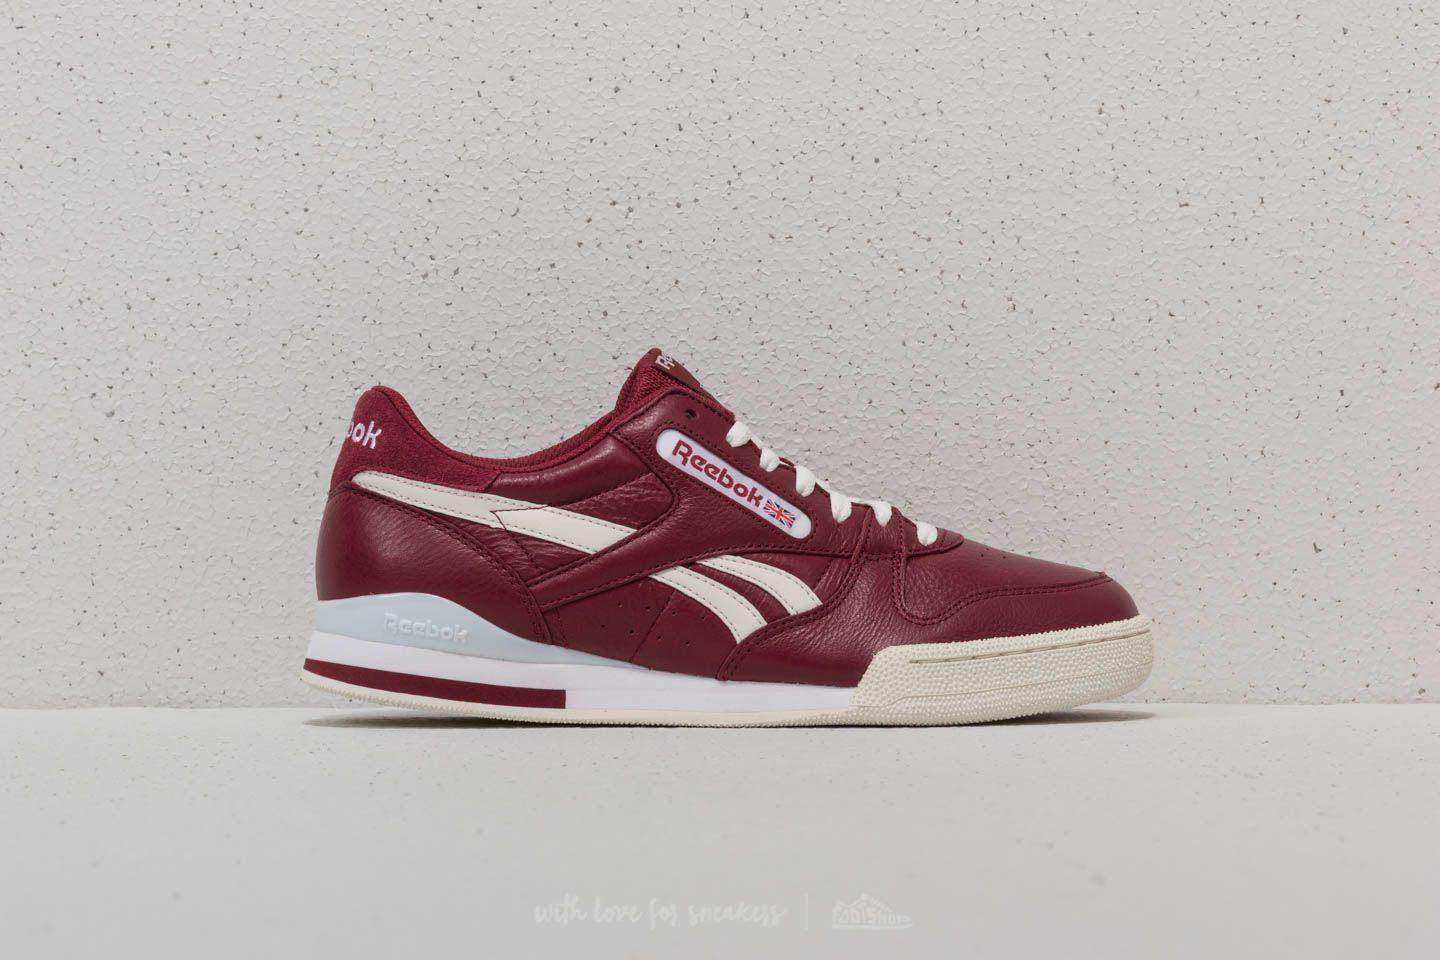 5f70c999670 Reebok Phase 1 Pro DL Urban Maroon  Cloud Grey at a great price 55 €